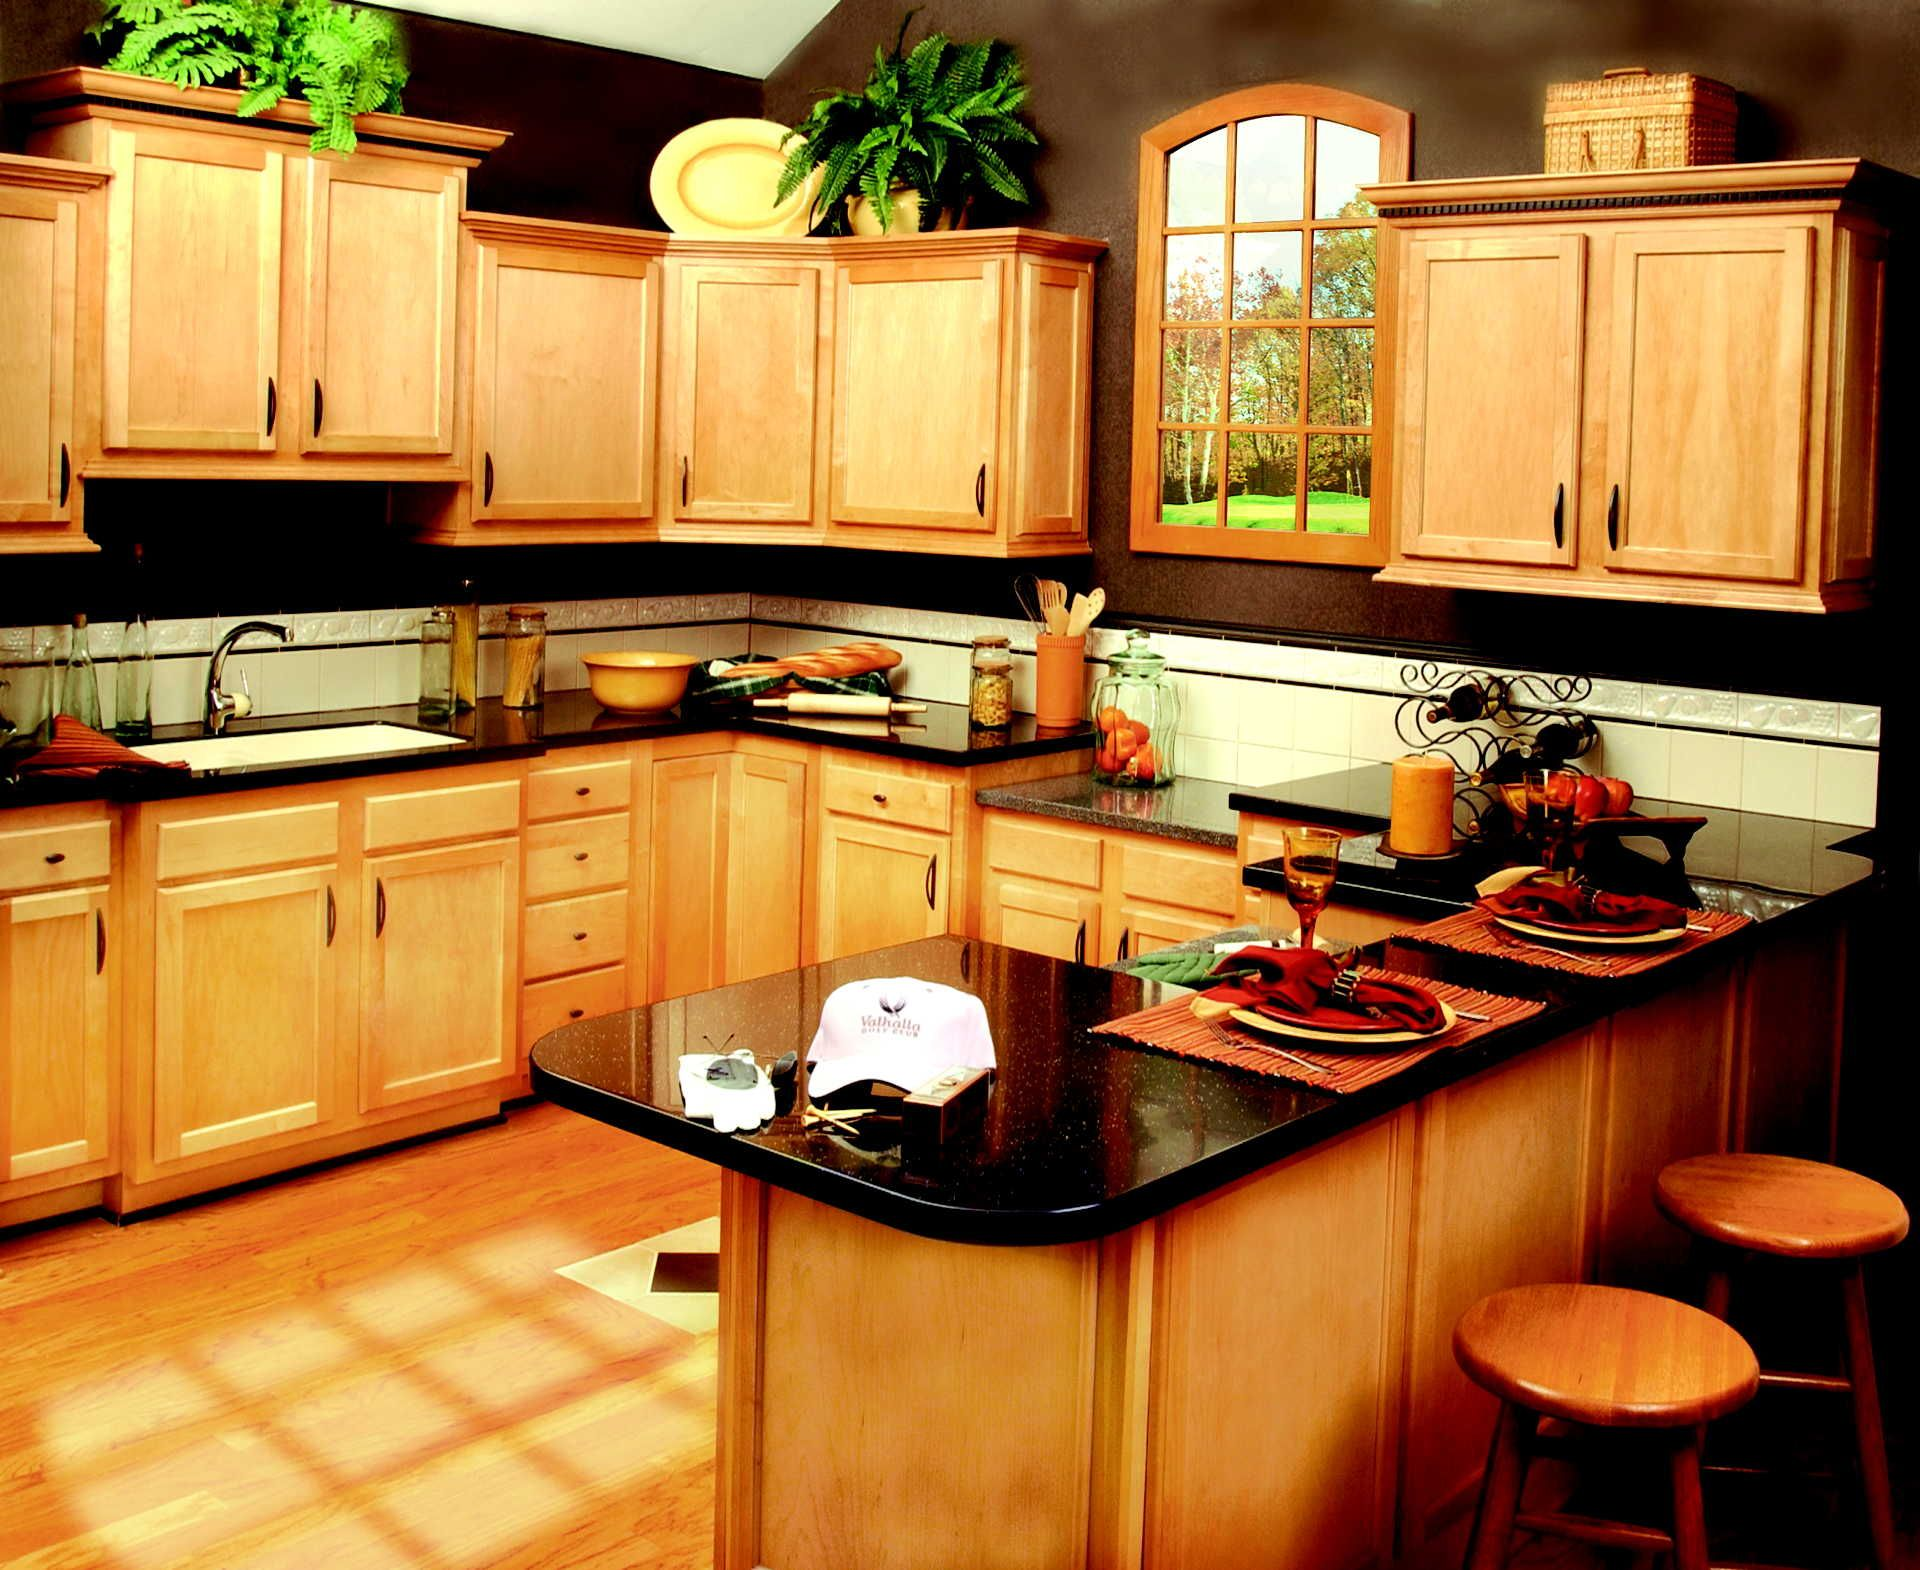 small kitchen cabinets palm tree decor best designs ideas kitchens